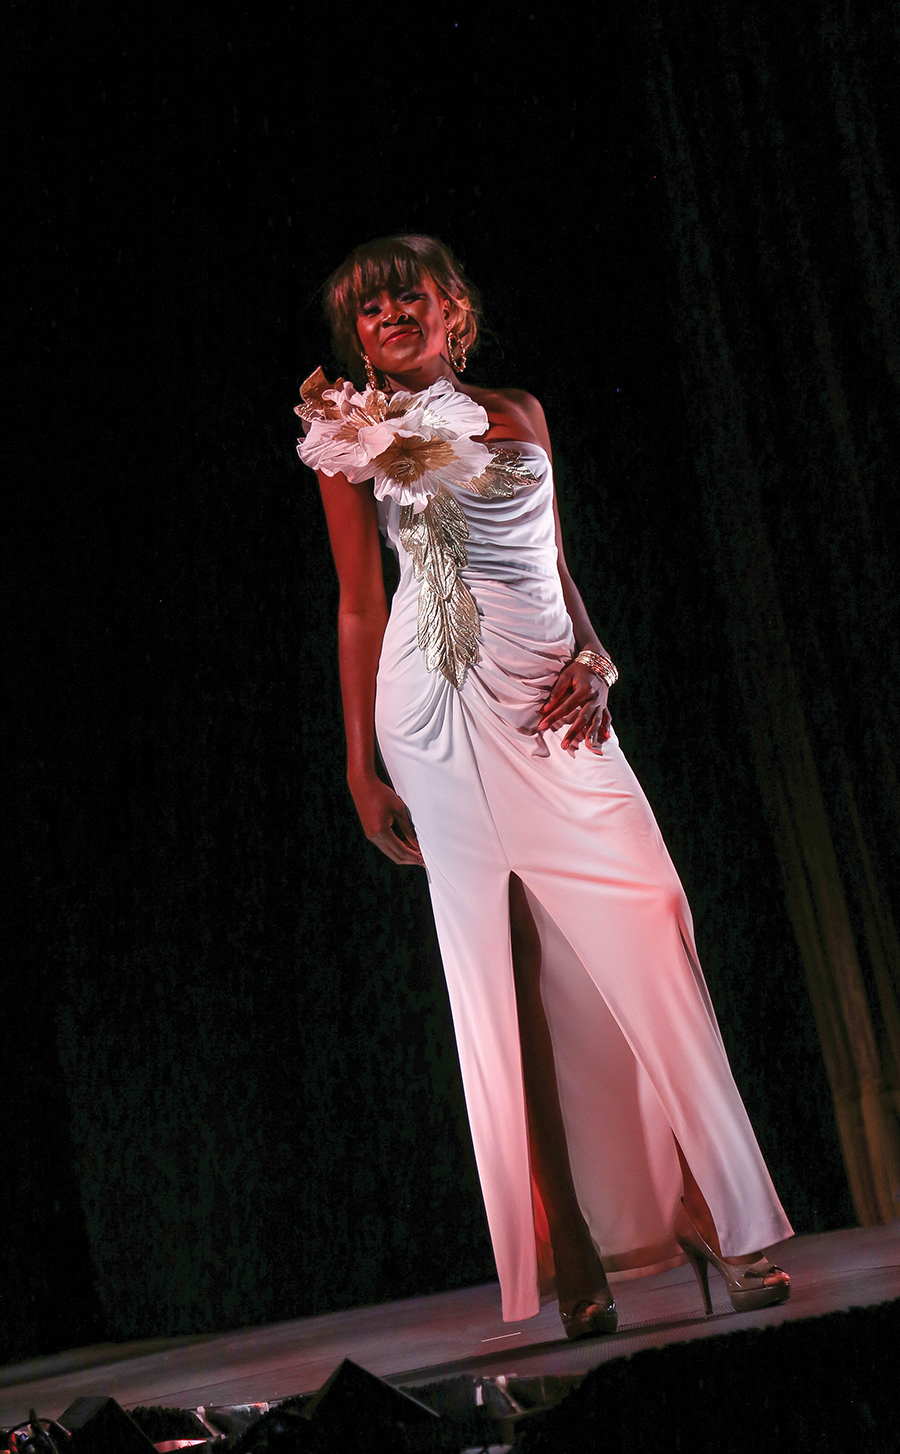 A model wears one of Eugene Stutzman's dresses on the runway